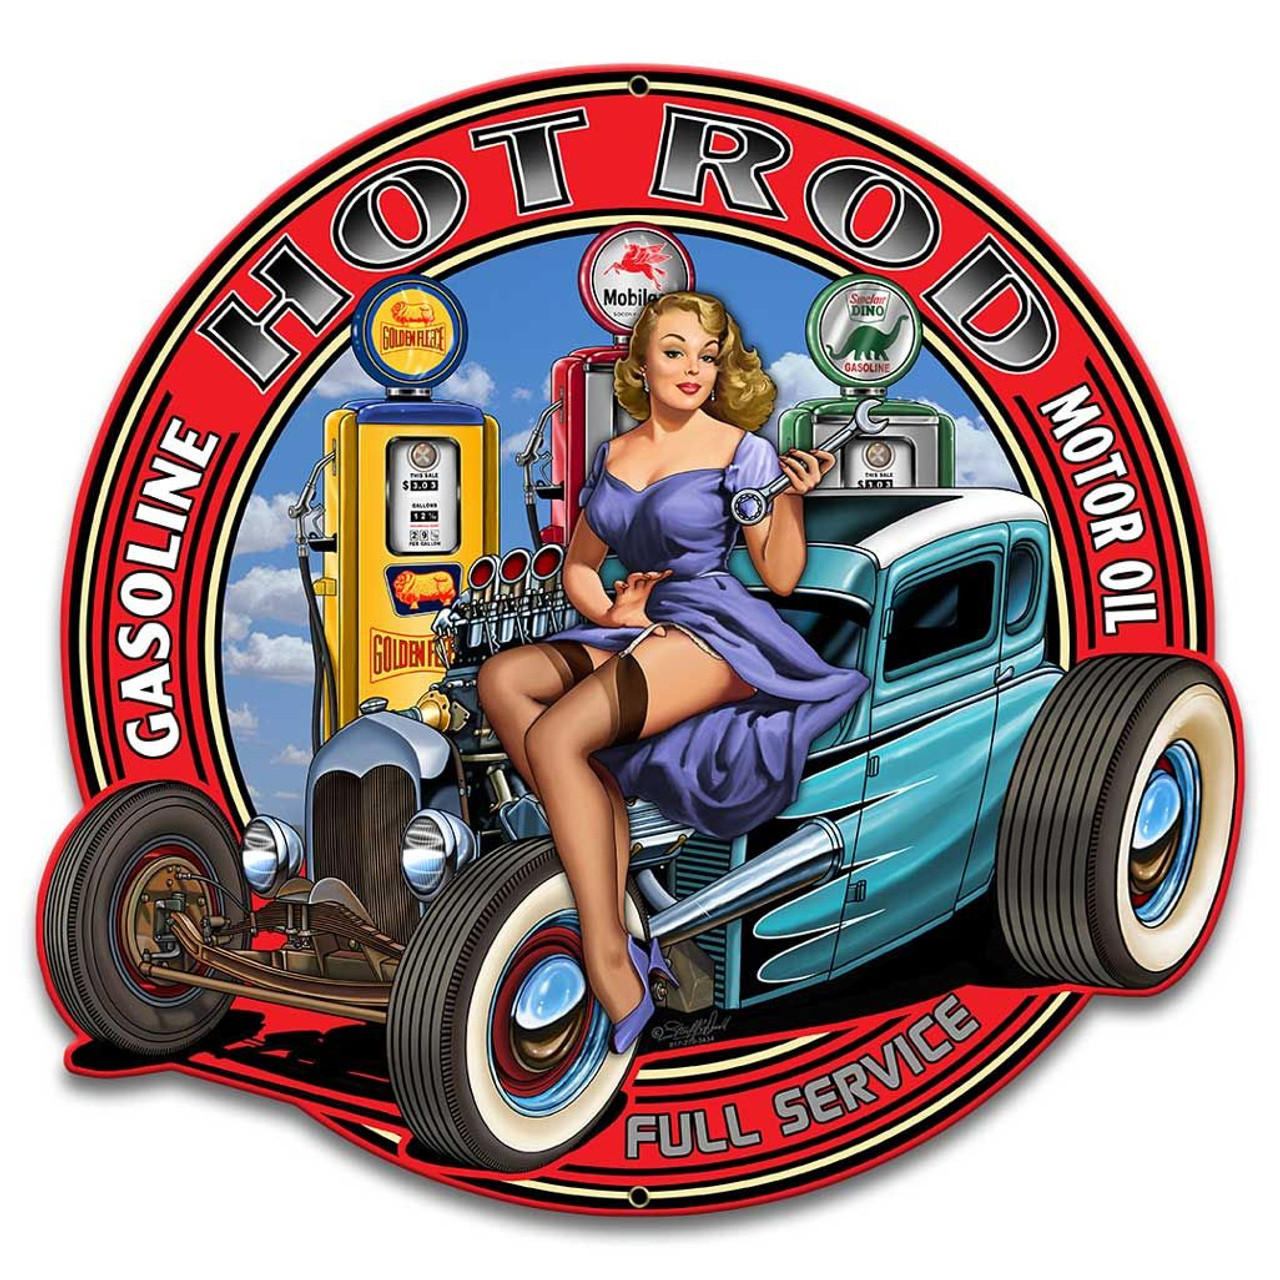 Twisted Rat - Pin-Up Girl Metal Sign 14 x 14 inches